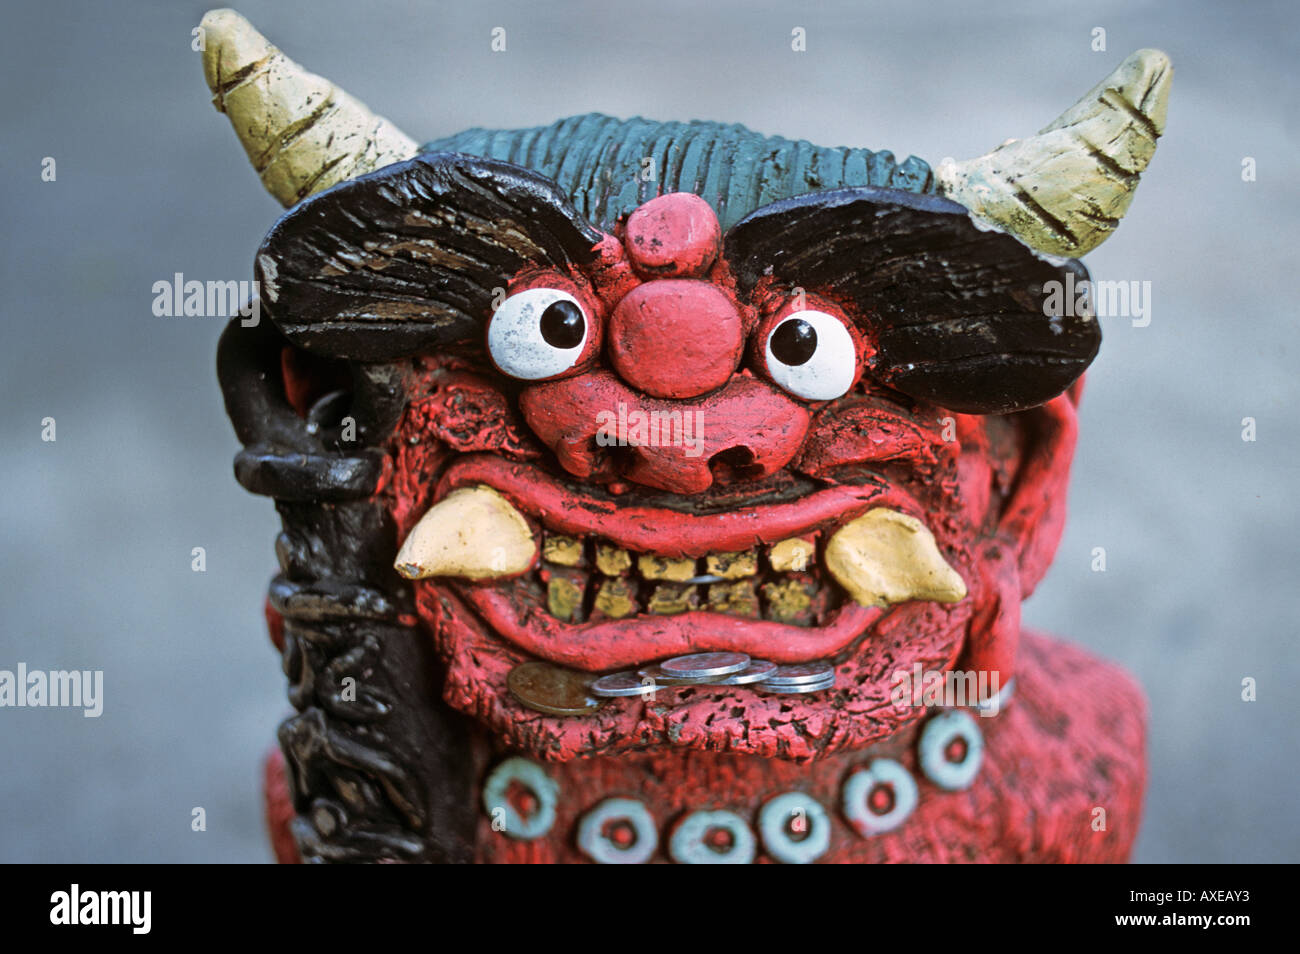 Small devilish oni statue with fearsome features Good luck charm Tsubosaka dera temple Nara prefecture Japan - Stock Image